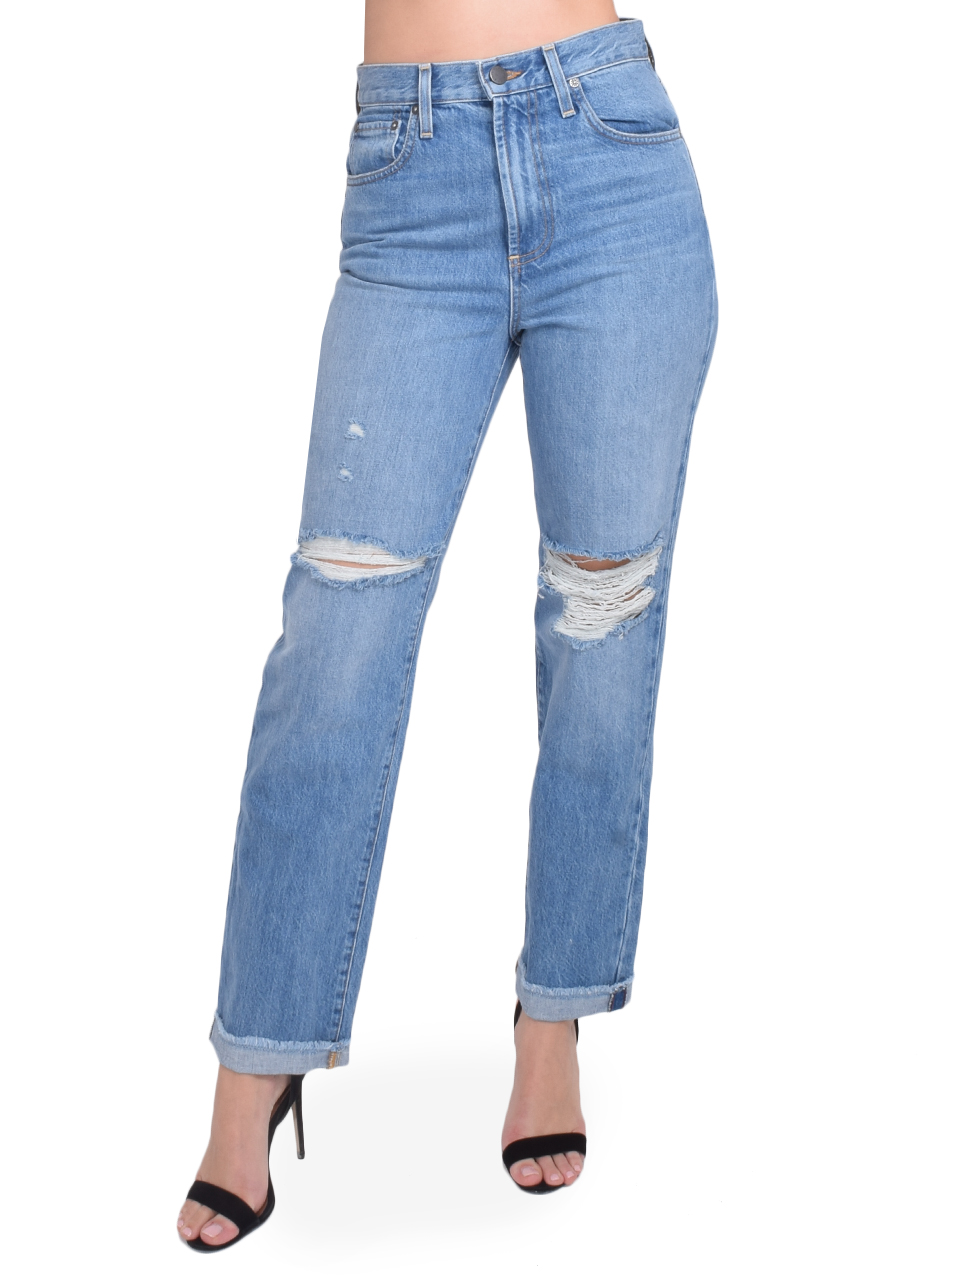 ALICE + OLIVIA Amazing High Rise Boyfriend Jean in Not Yours Front View  X1https://cdn11.bigcommerce.com/s-3wu6n/products/33204/images/109499/50__80824.1590180833.244.365.jpg?c=2X2